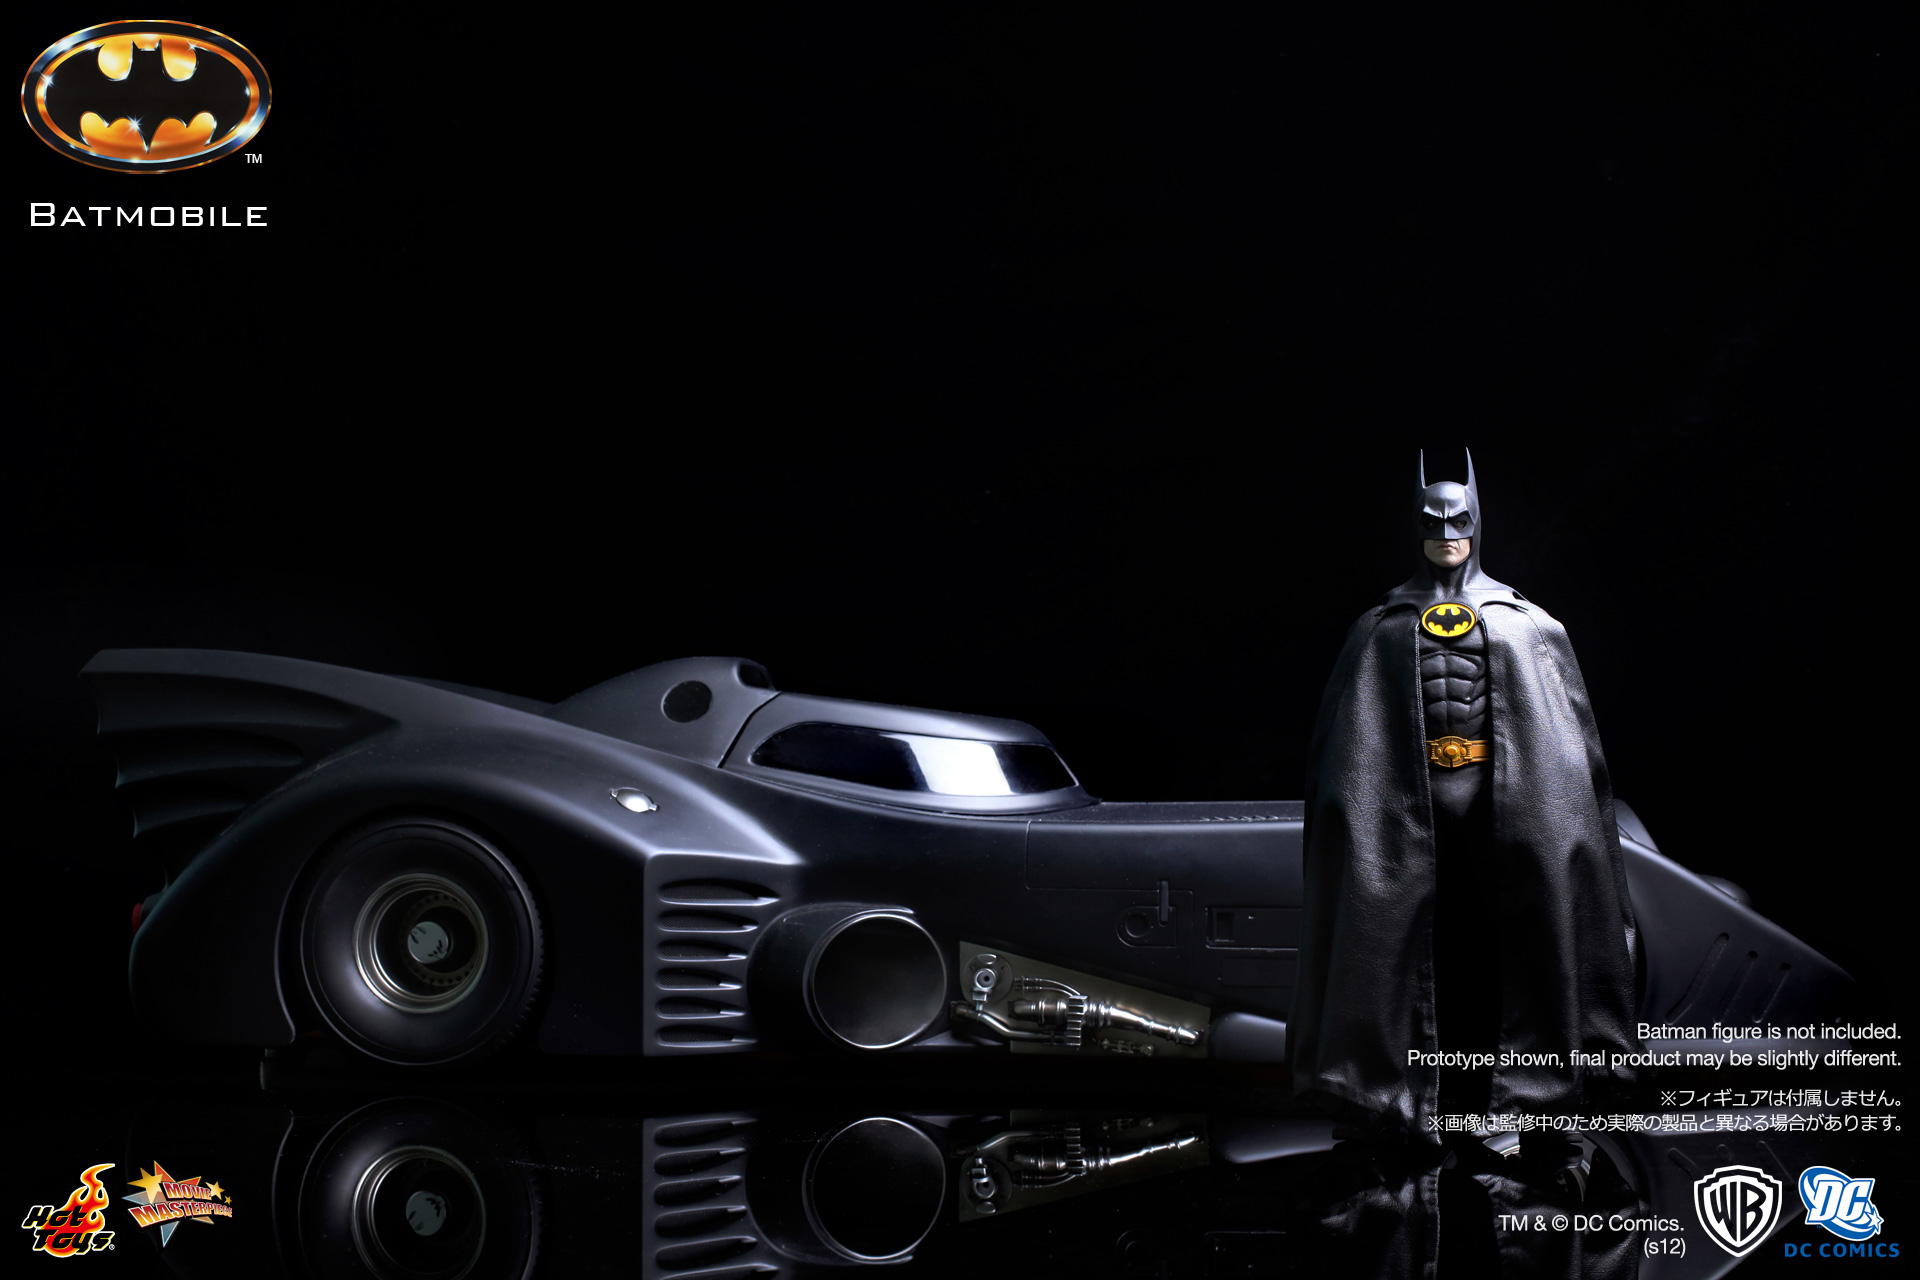 Batmobile 1989 Wallpaper Top Pictures Gallery Online 1920x1280